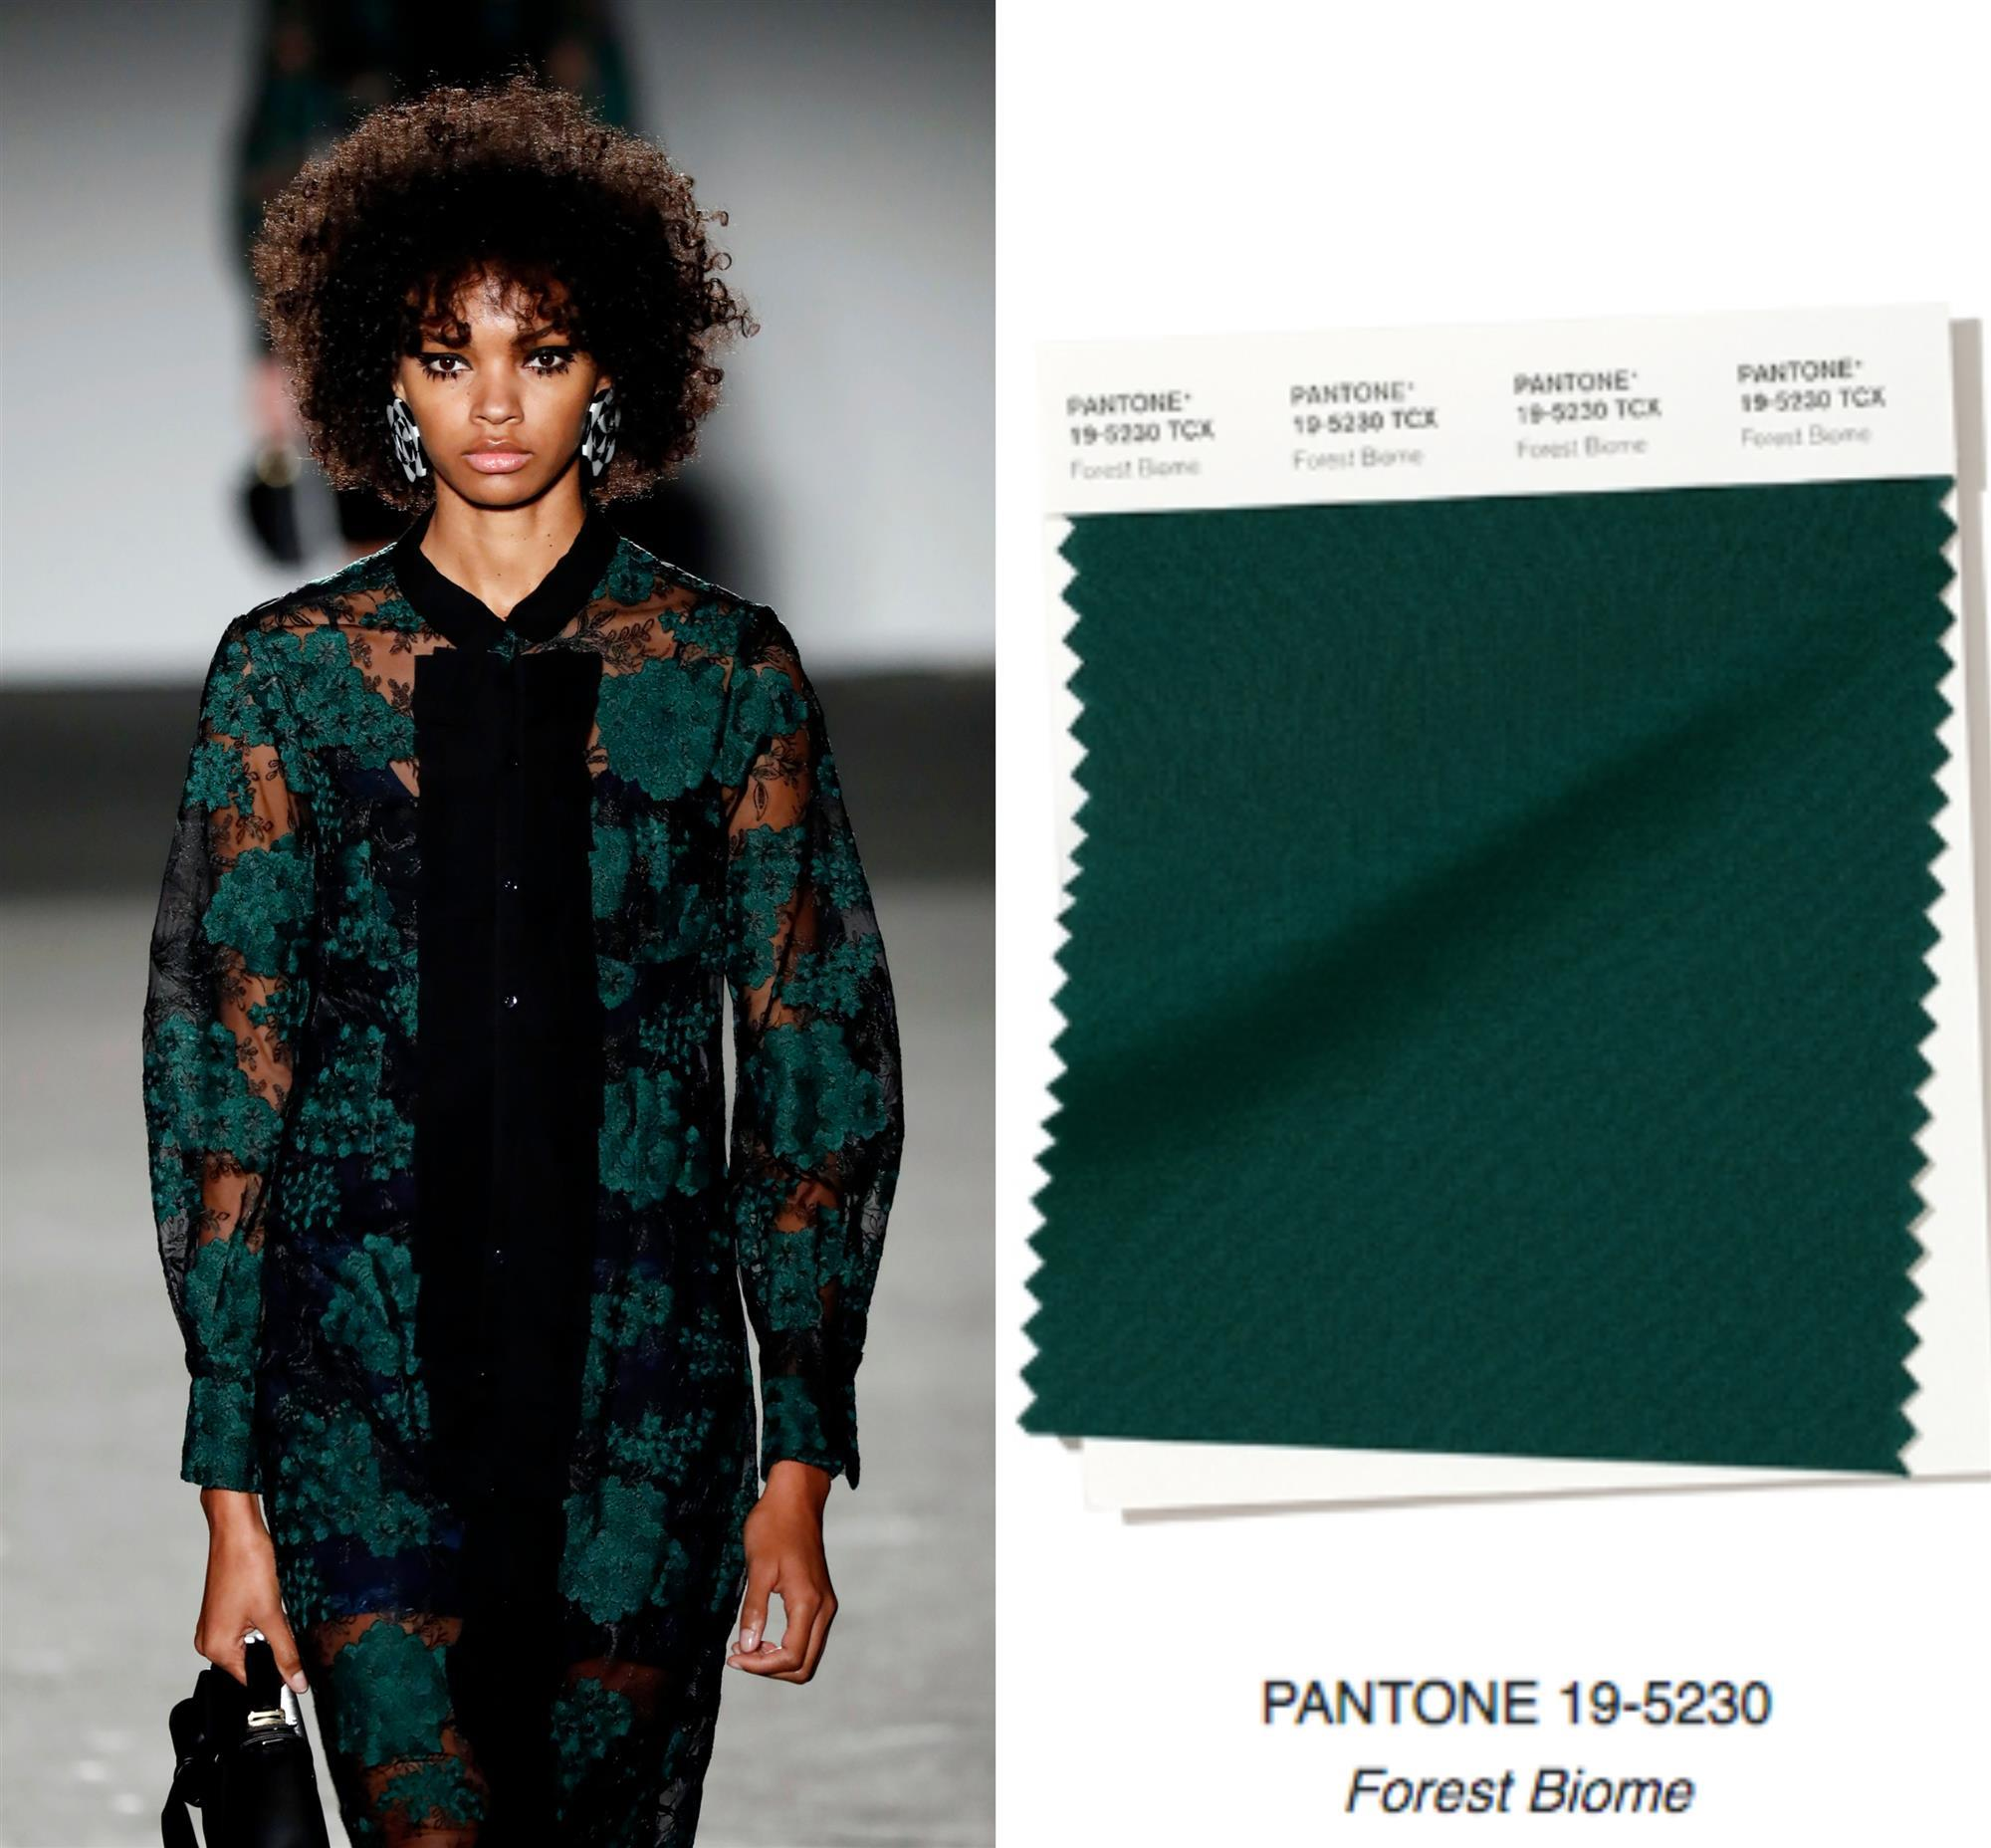 PANTONE 19-5230 - Forest Biome